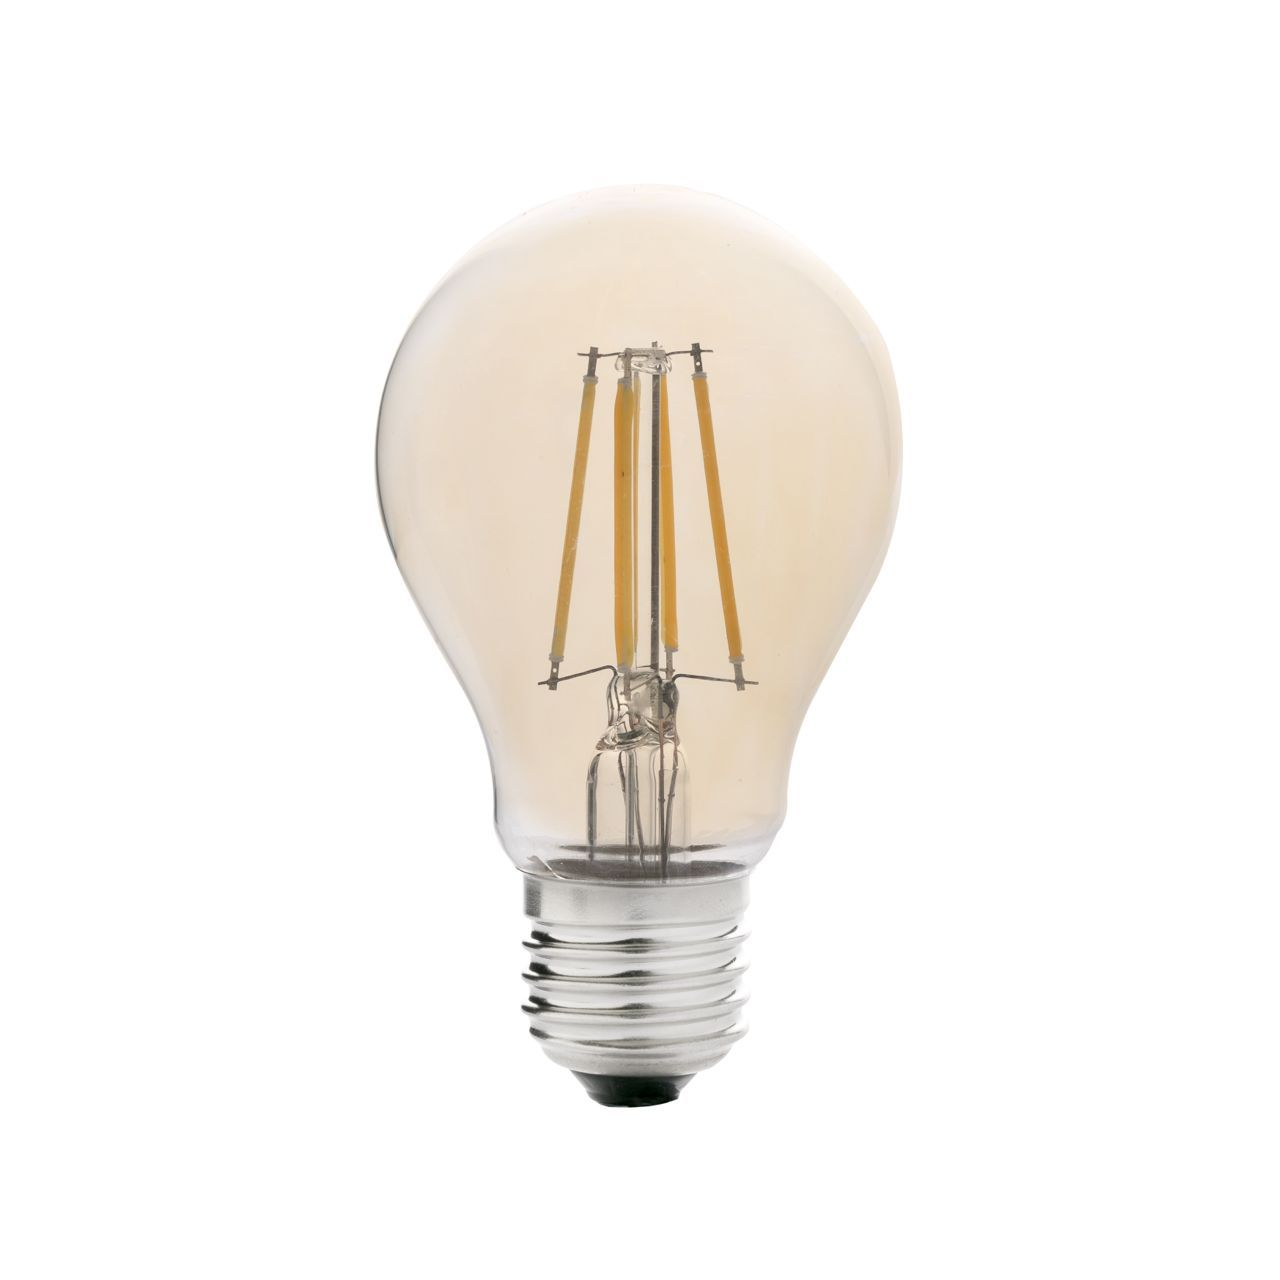 Bombilla Estandar De Led Rustica Regulable Con Filamento Serie Fil11 Bombillas Led Filamento Decorativas Lamparas Bombillas Bombillas Led Y Bombillas Led Vintage